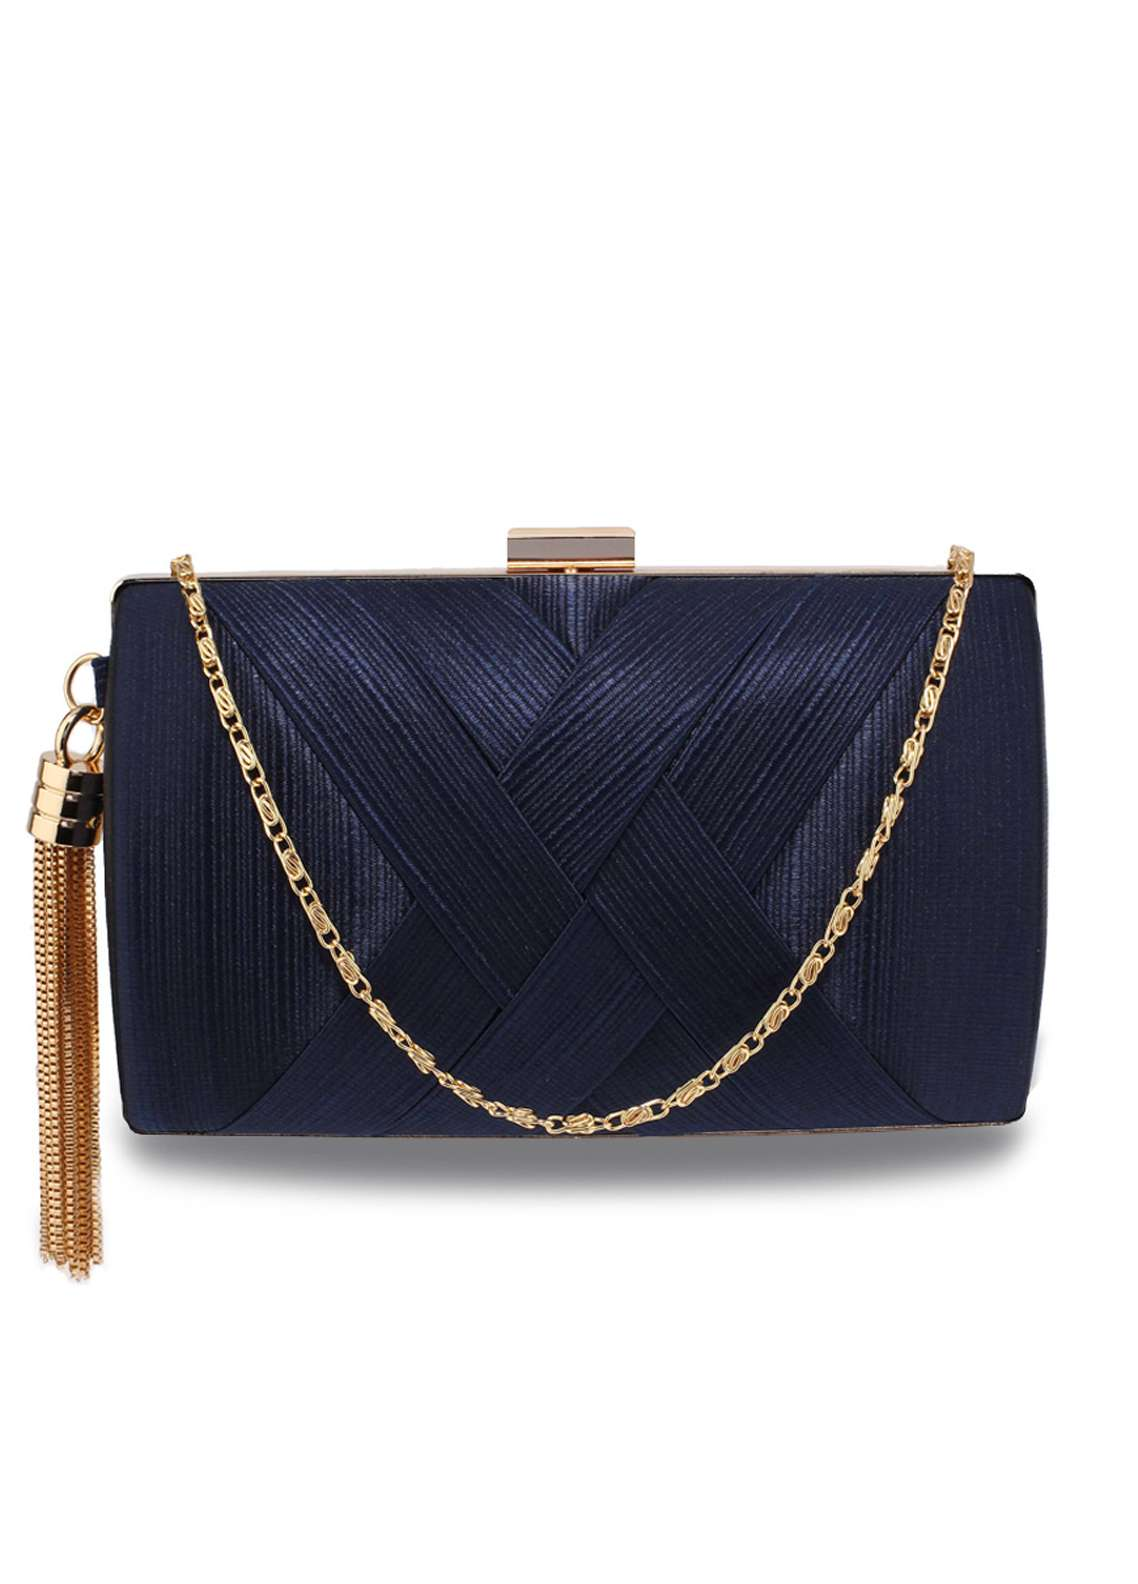 Leesun London   Clutch Bags  for Women  Navy with Plain Texture